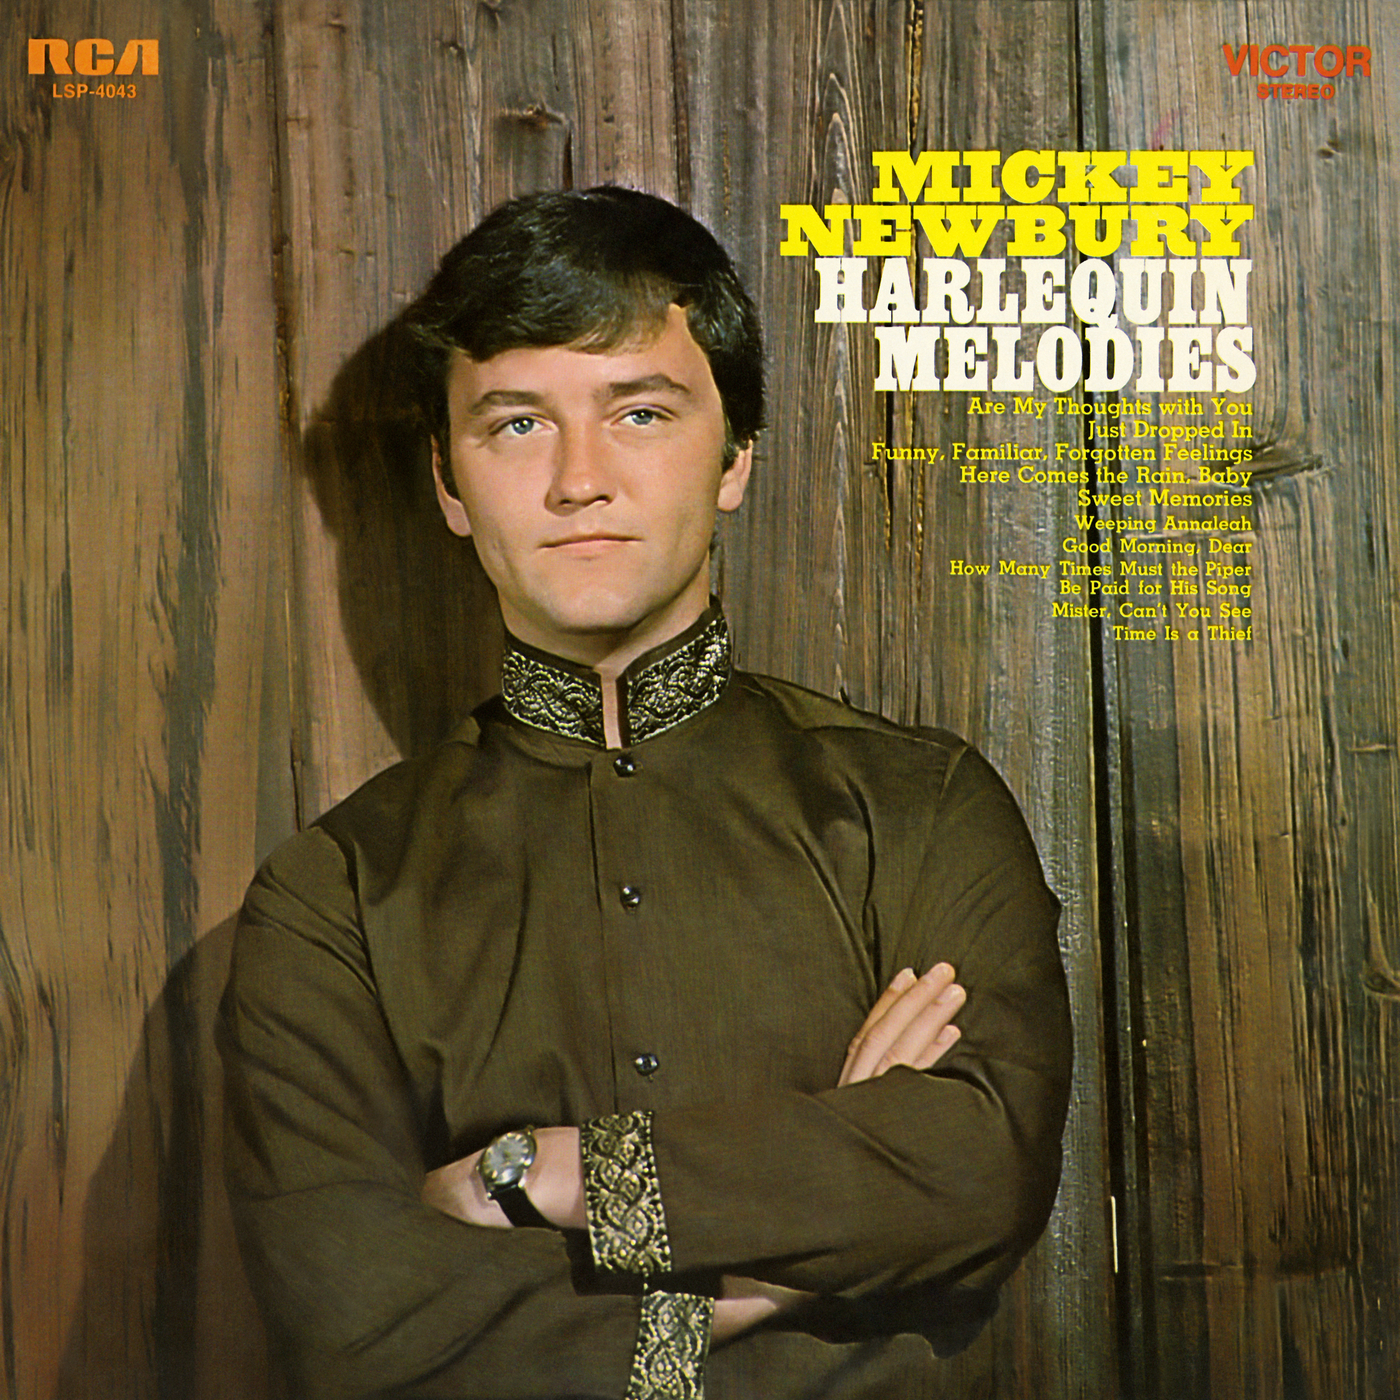 Harlequin Melodies - Mickey Newbury